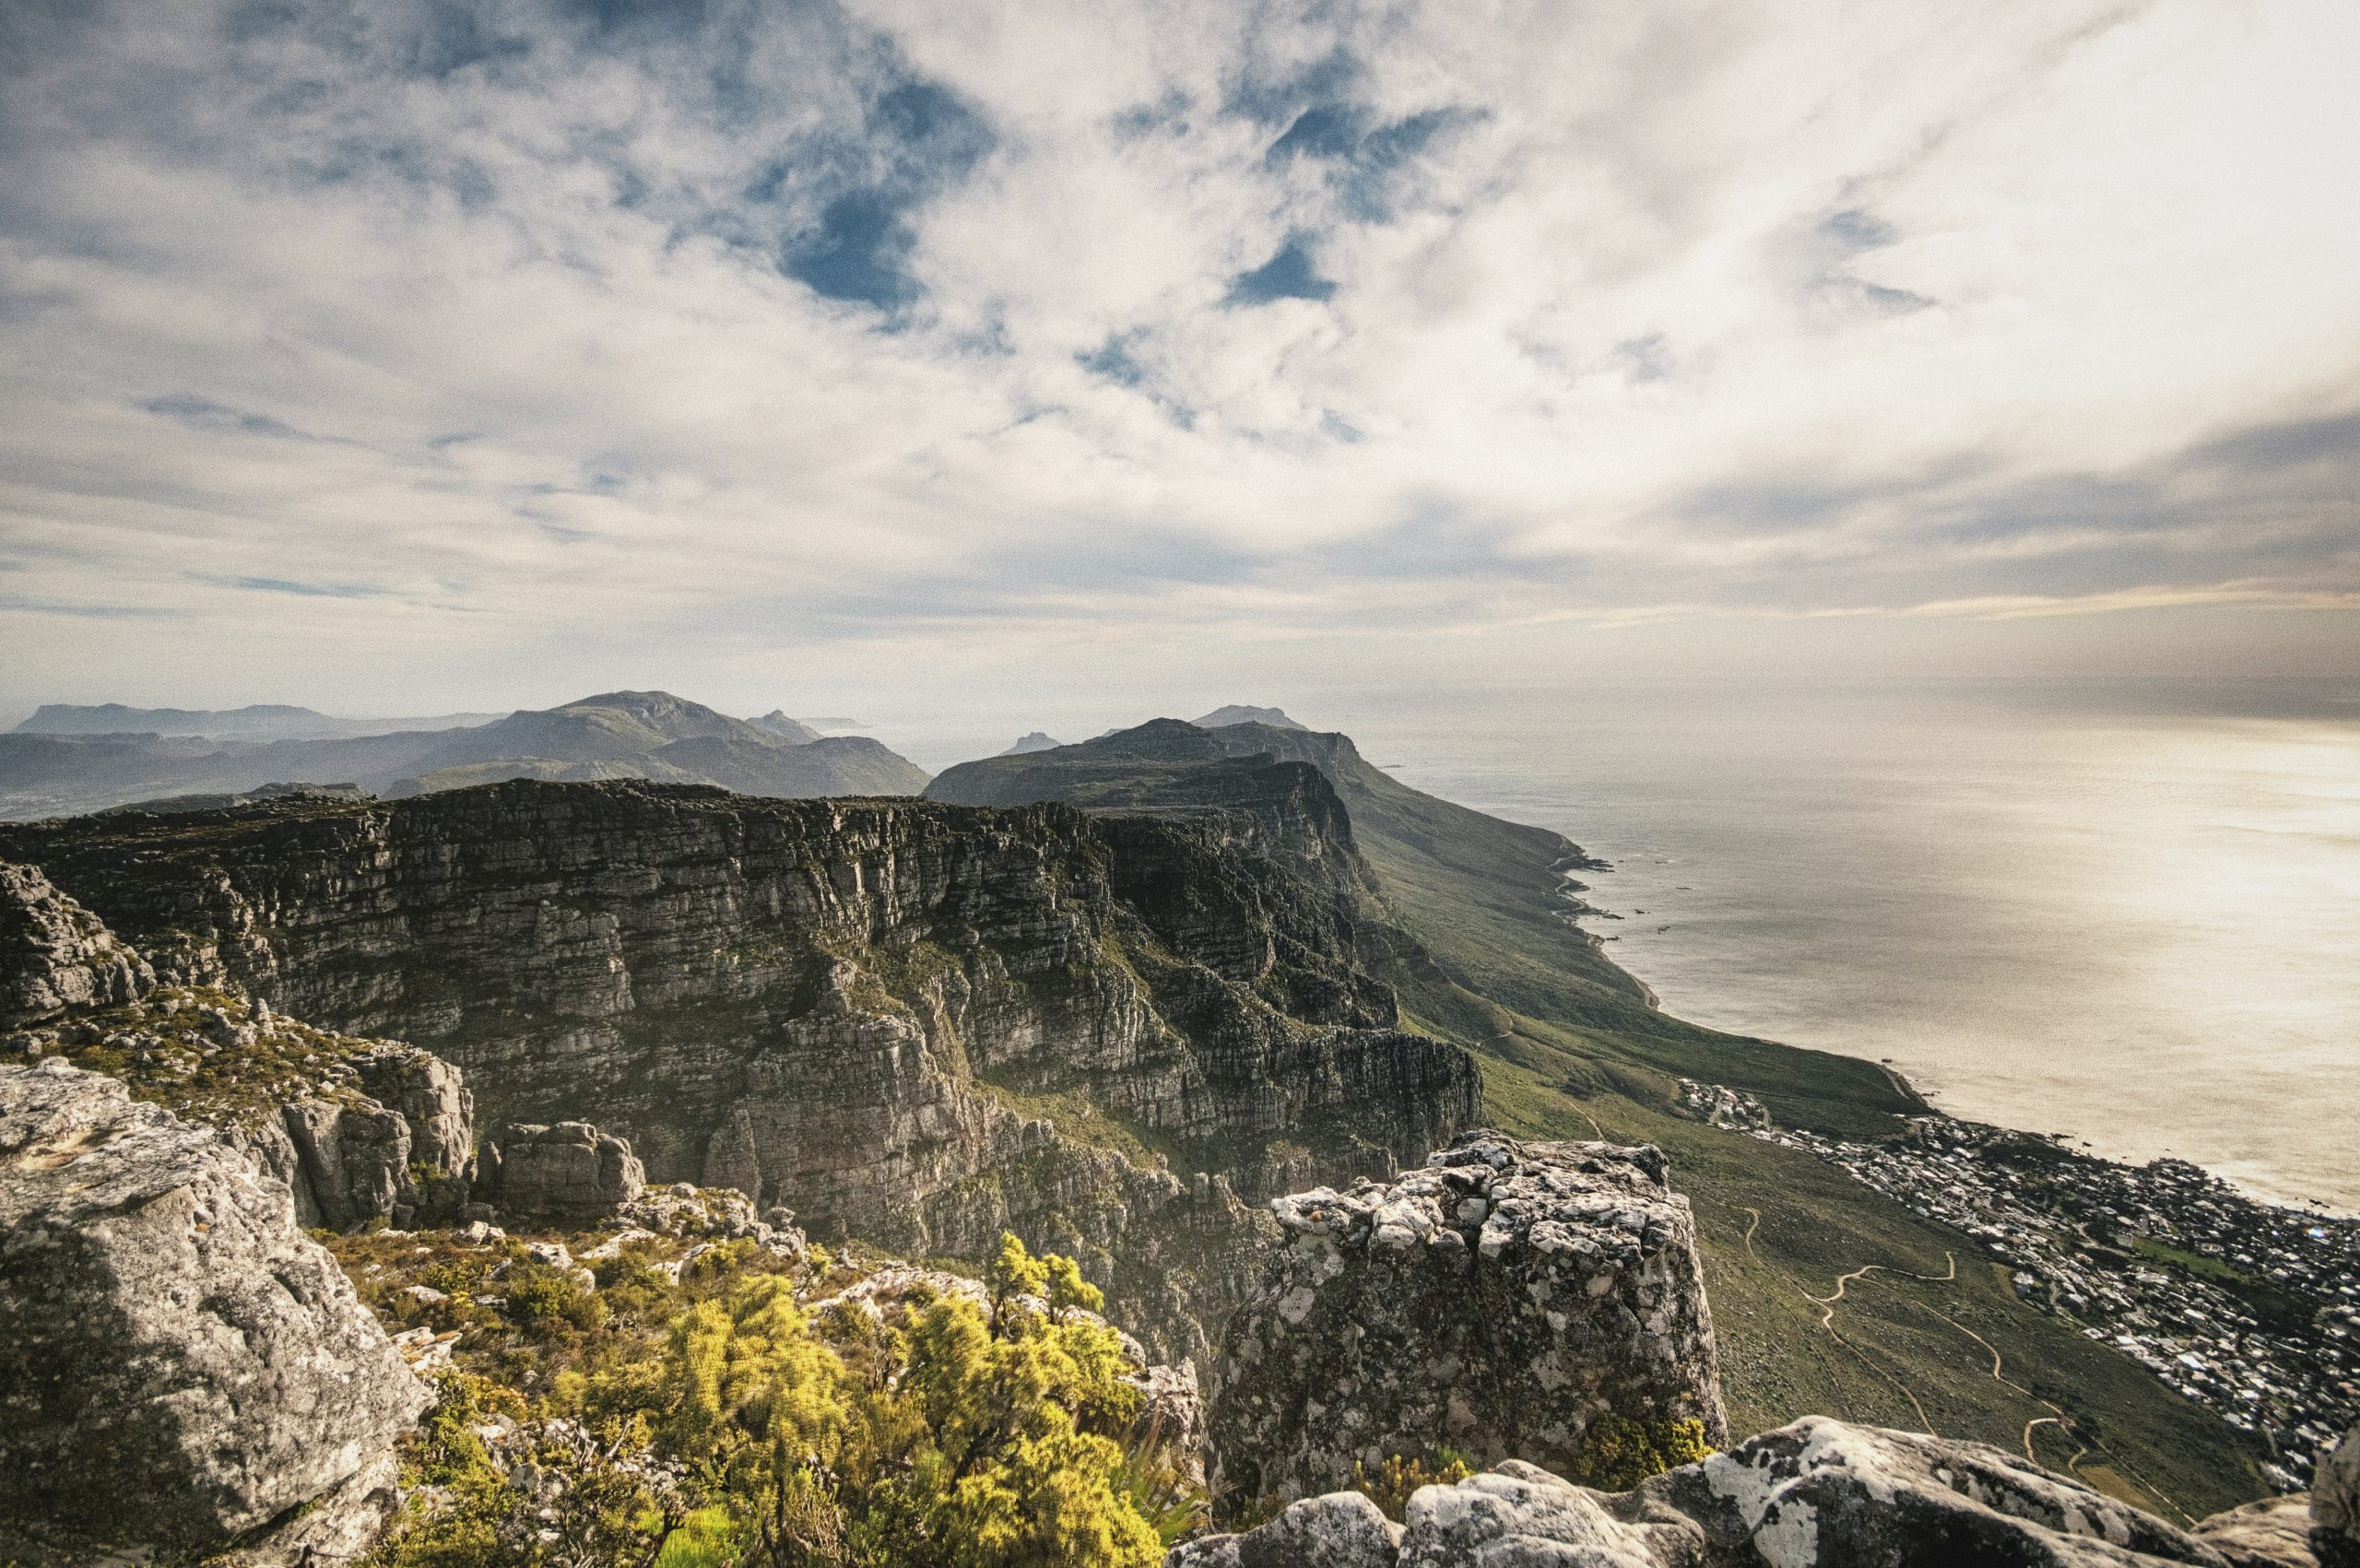 The Table Mountain, Cape Town, South Africa